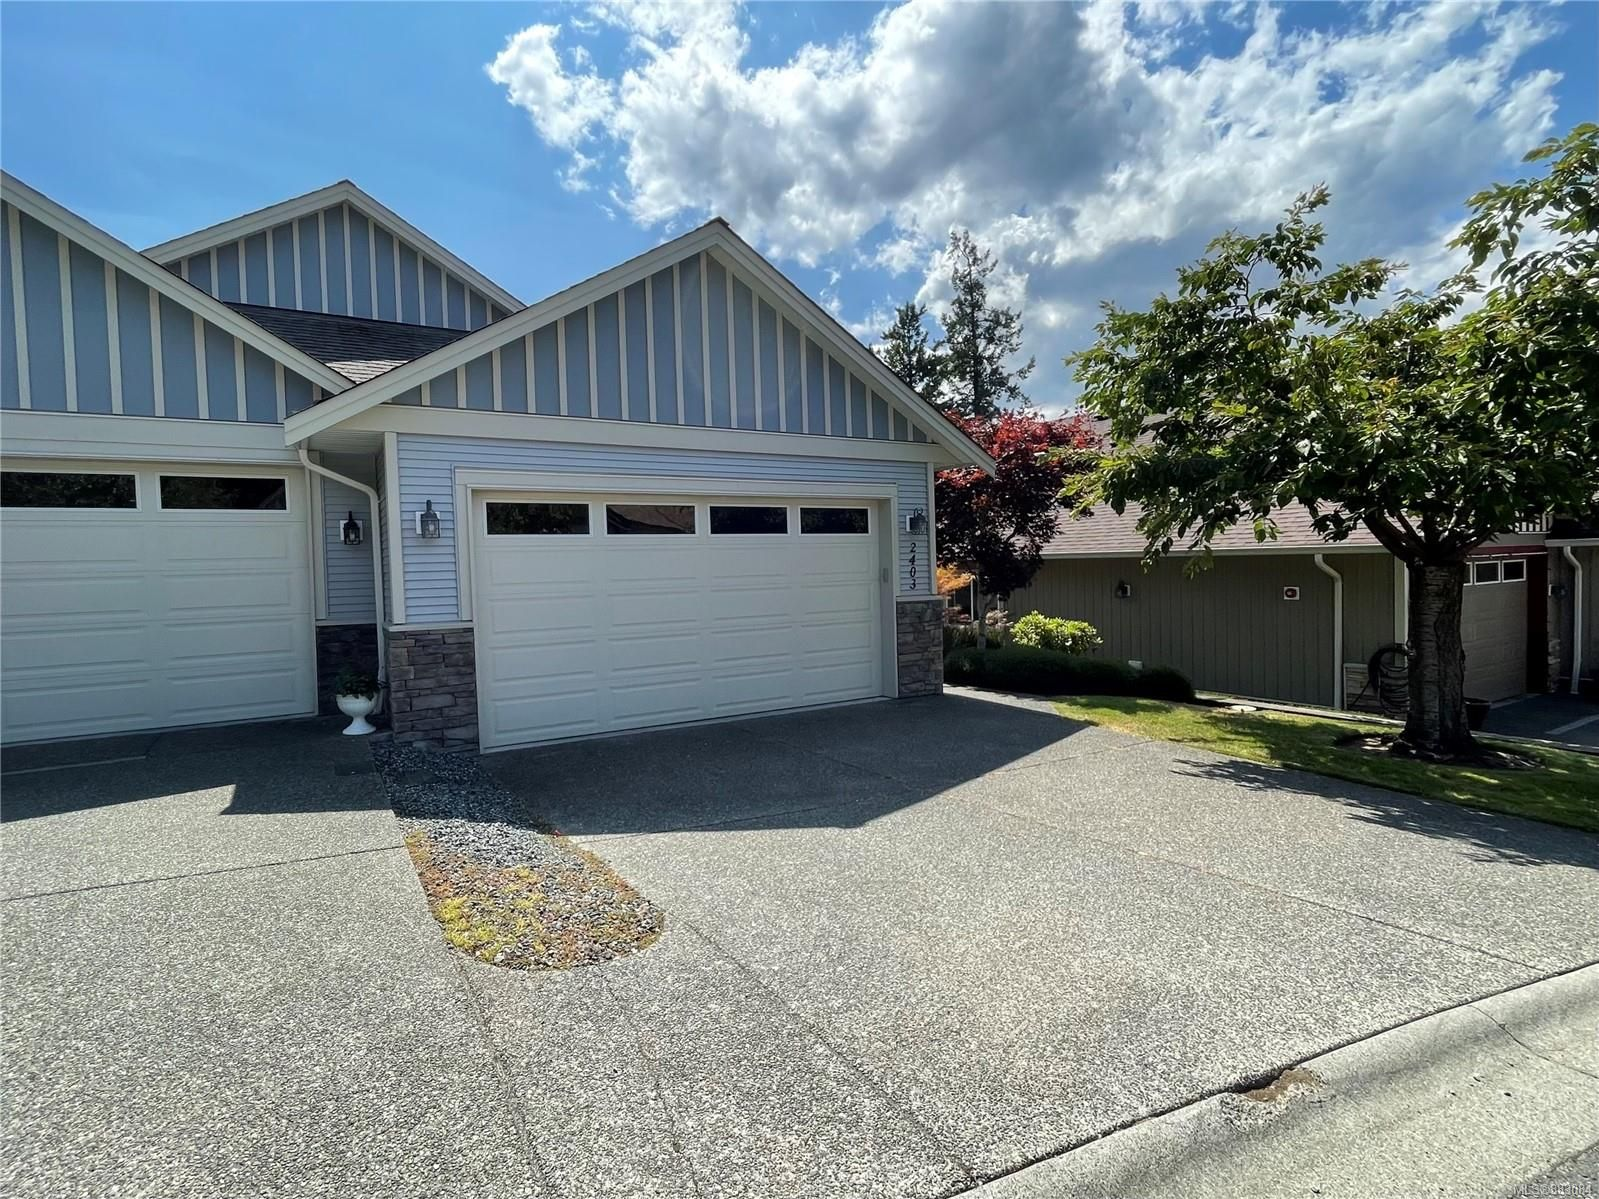 Main Photo: 2403 Parveen Pl in : Na Diver Lake Row/Townhouse for sale (Nanaimo)  : MLS®# 883084